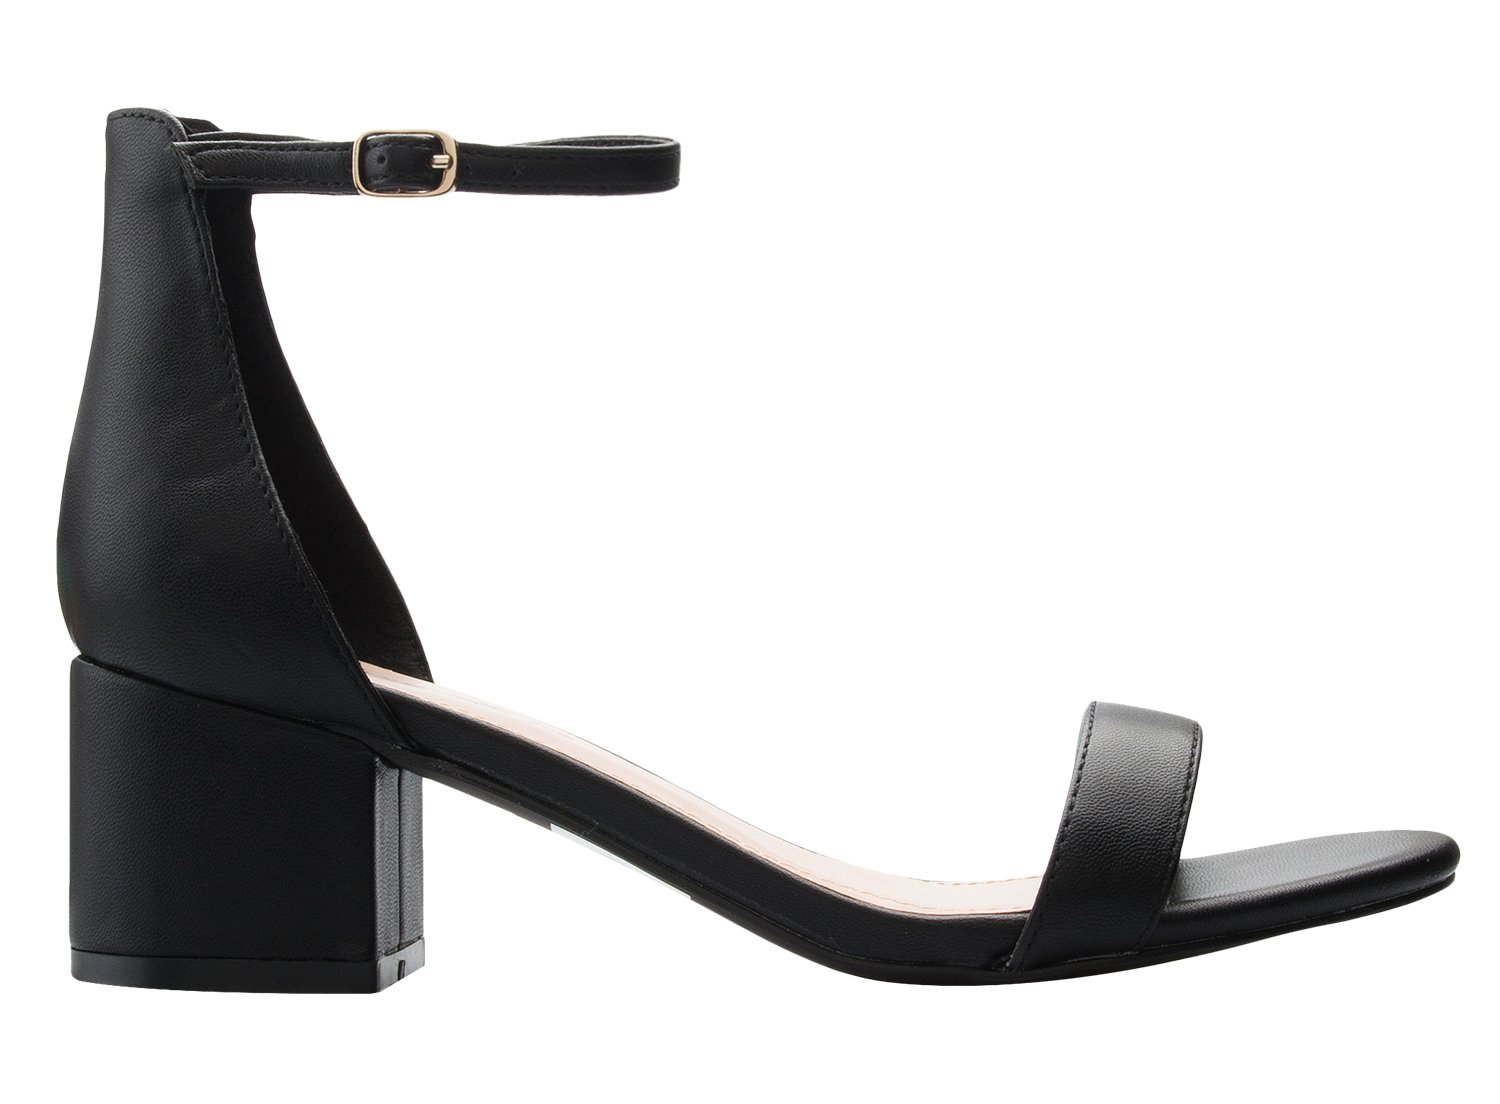 OLIVIA K Women's Ankle Strap Kitten Heel – Adorable Low Block Heel,Black Pu,8.5 B(M) US by OLIVIA K (Image #2)